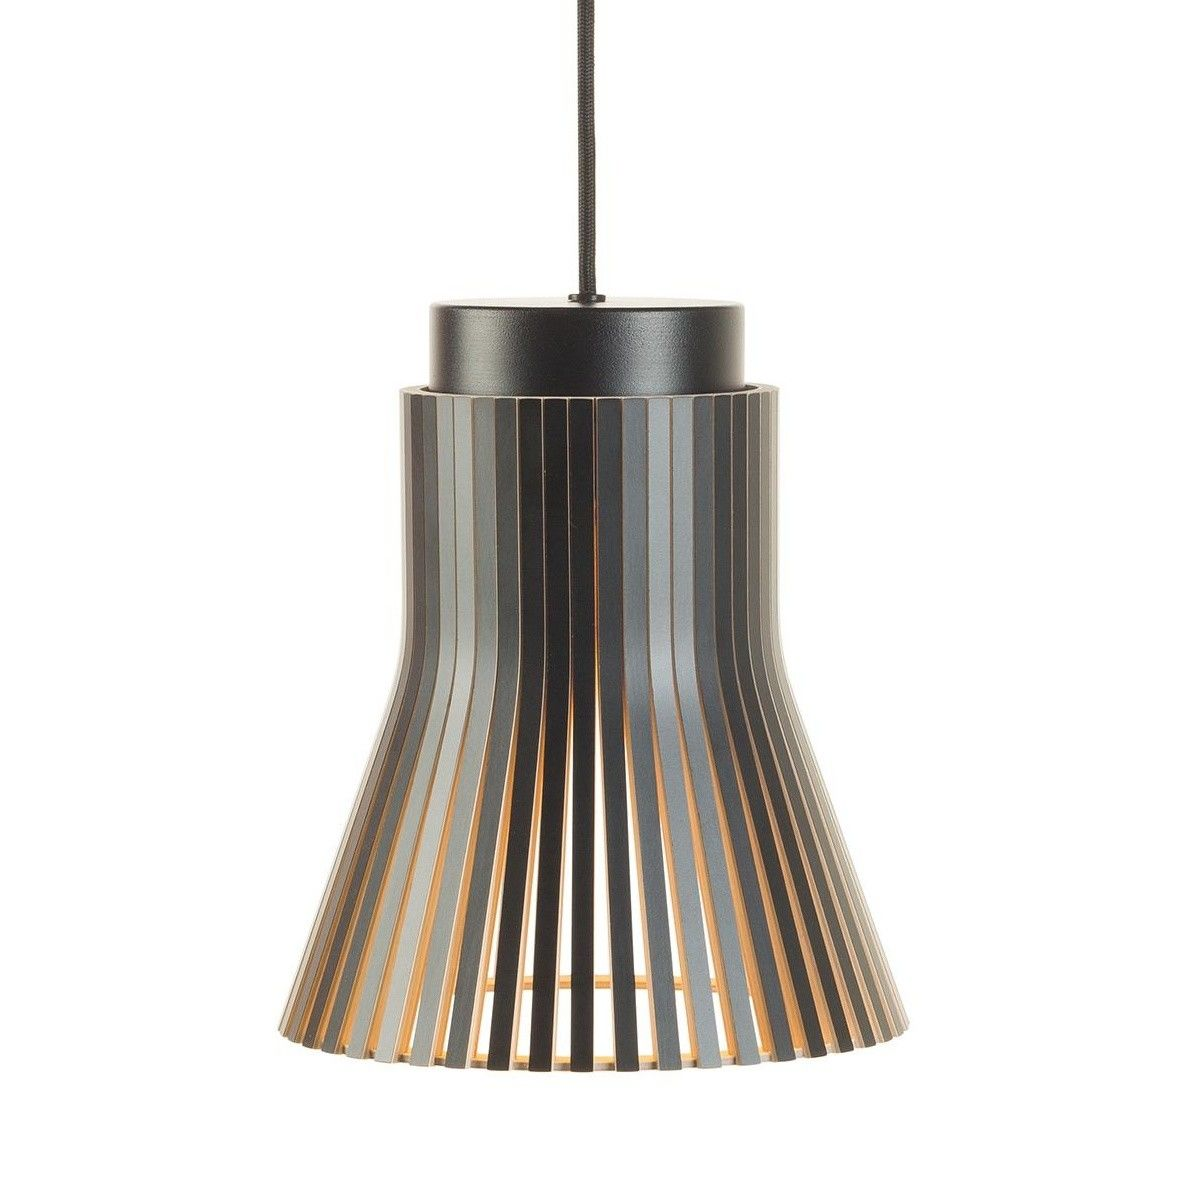 Petite 4600 suspension lamp secto design for Suspension design